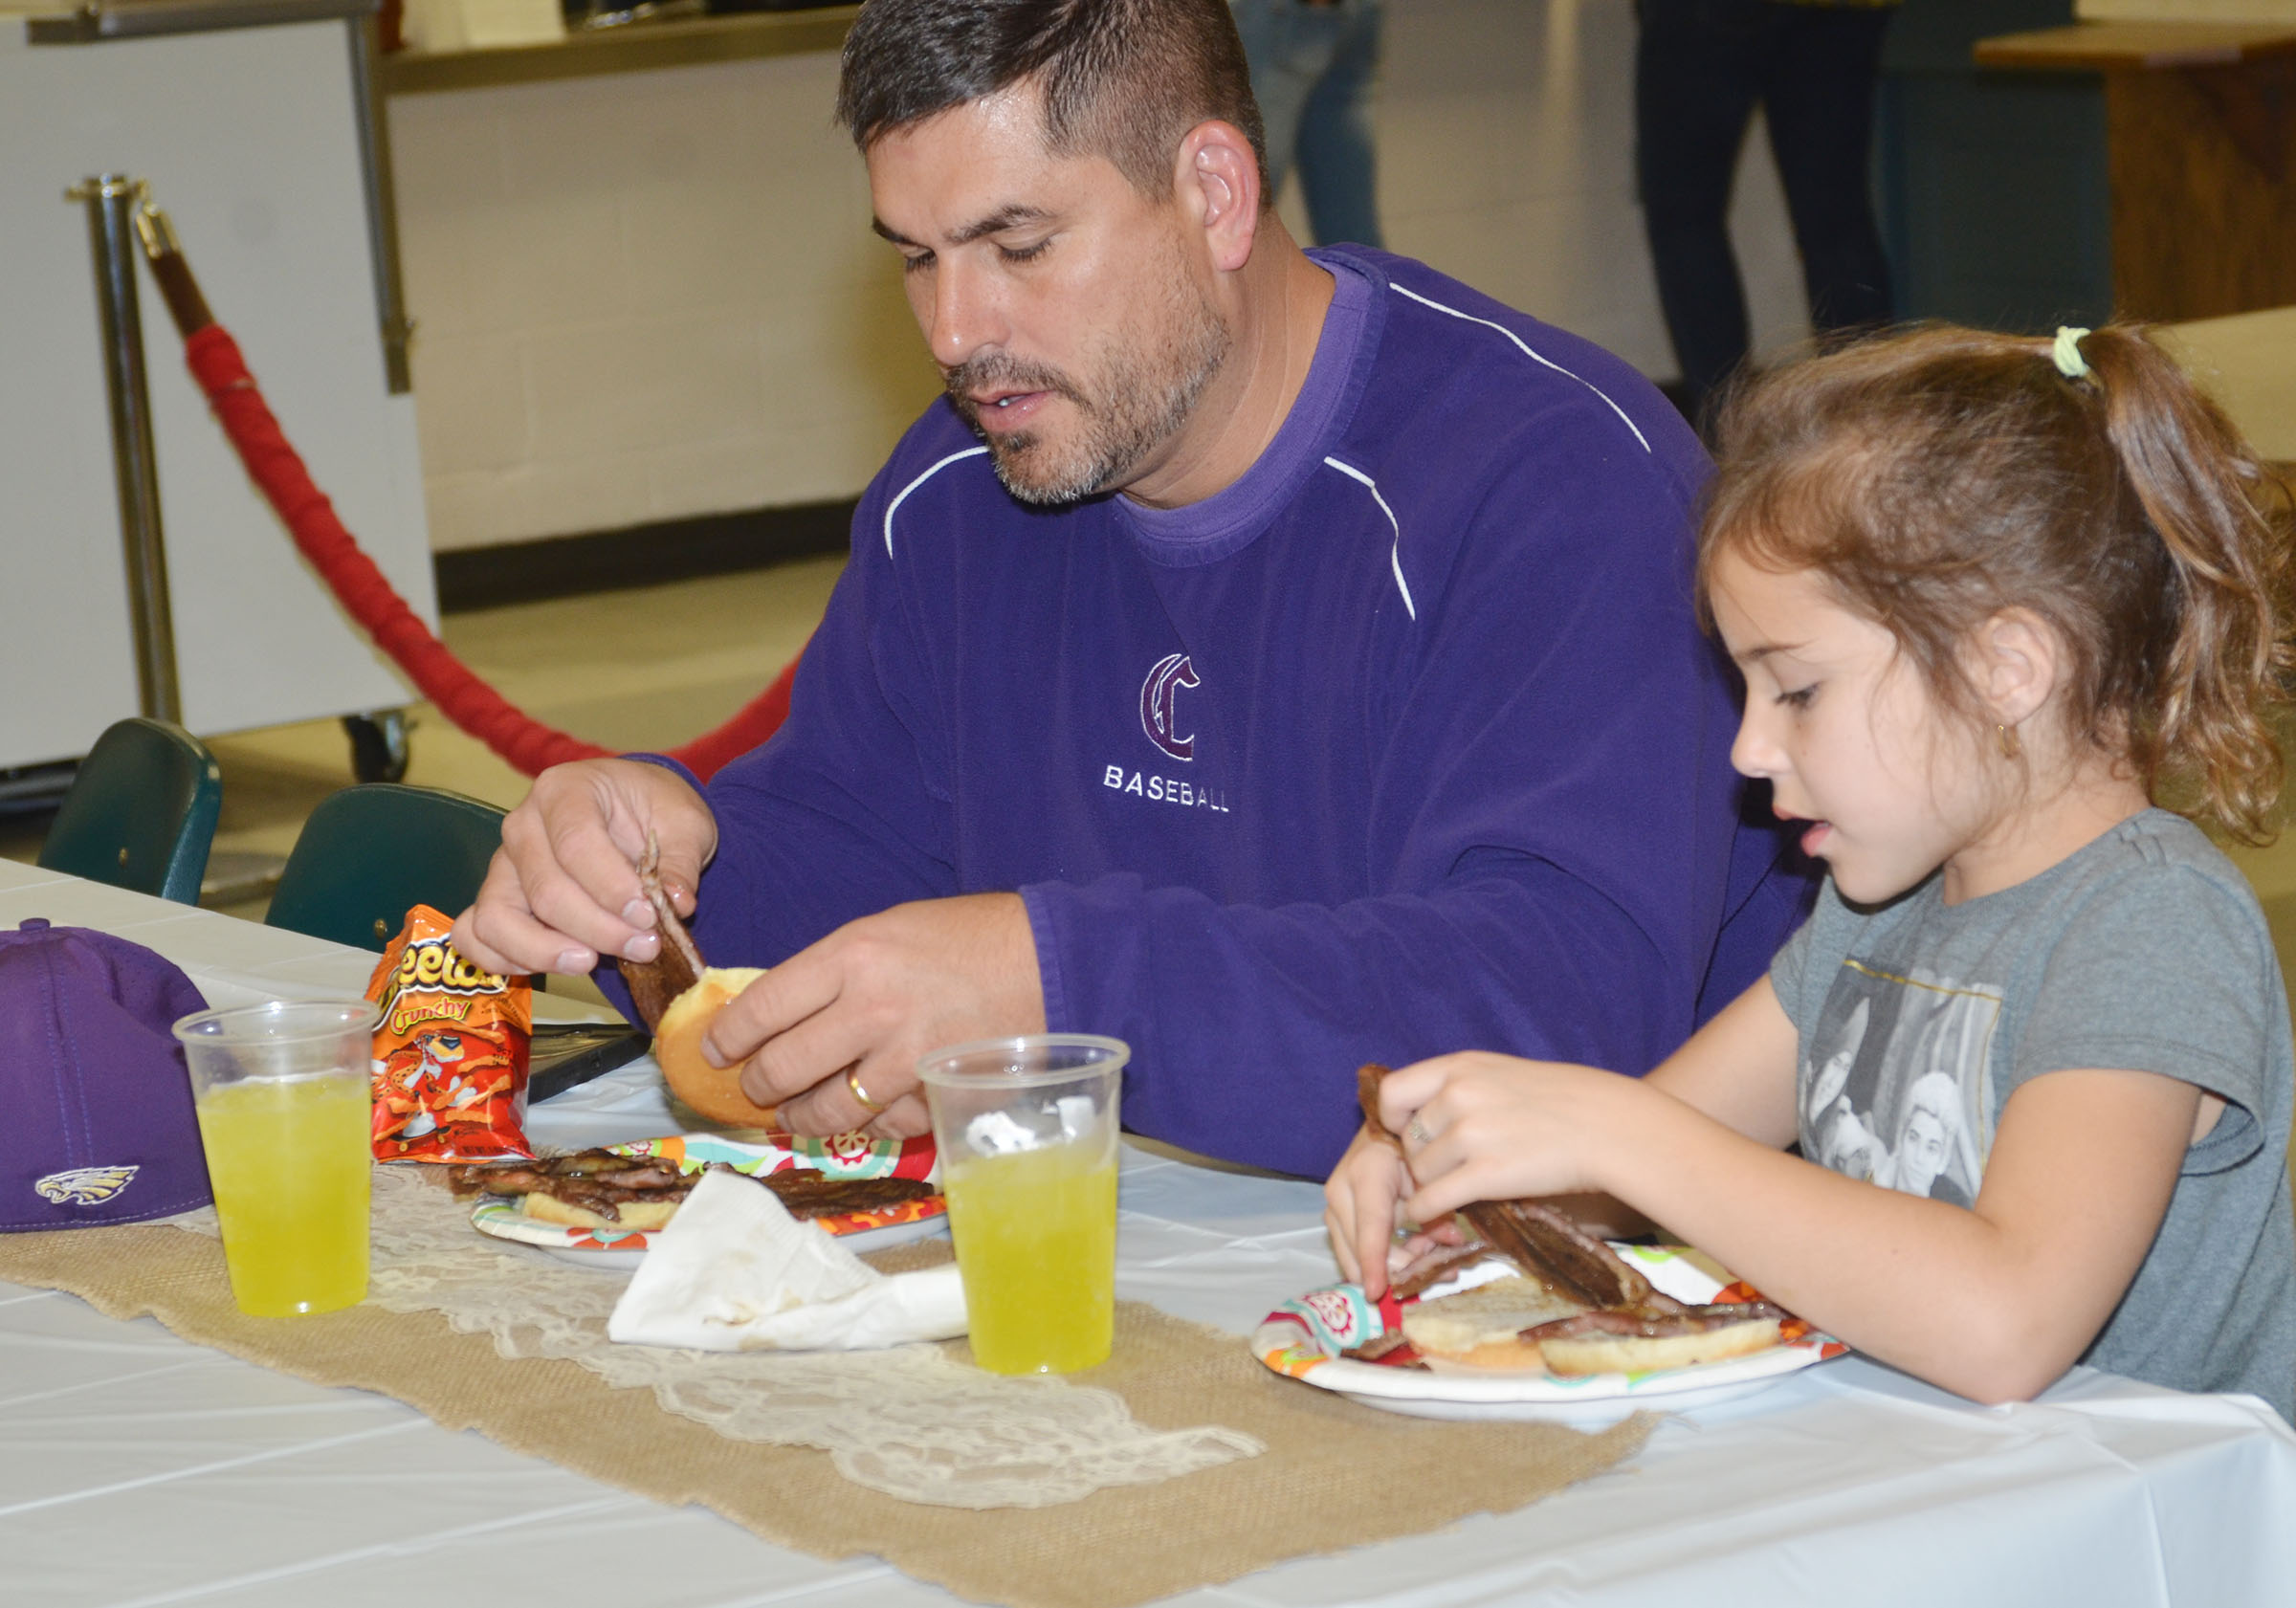 CHS Principal Kirby Smith and his daughter, Karsyn, eat a barbecue dinner together.